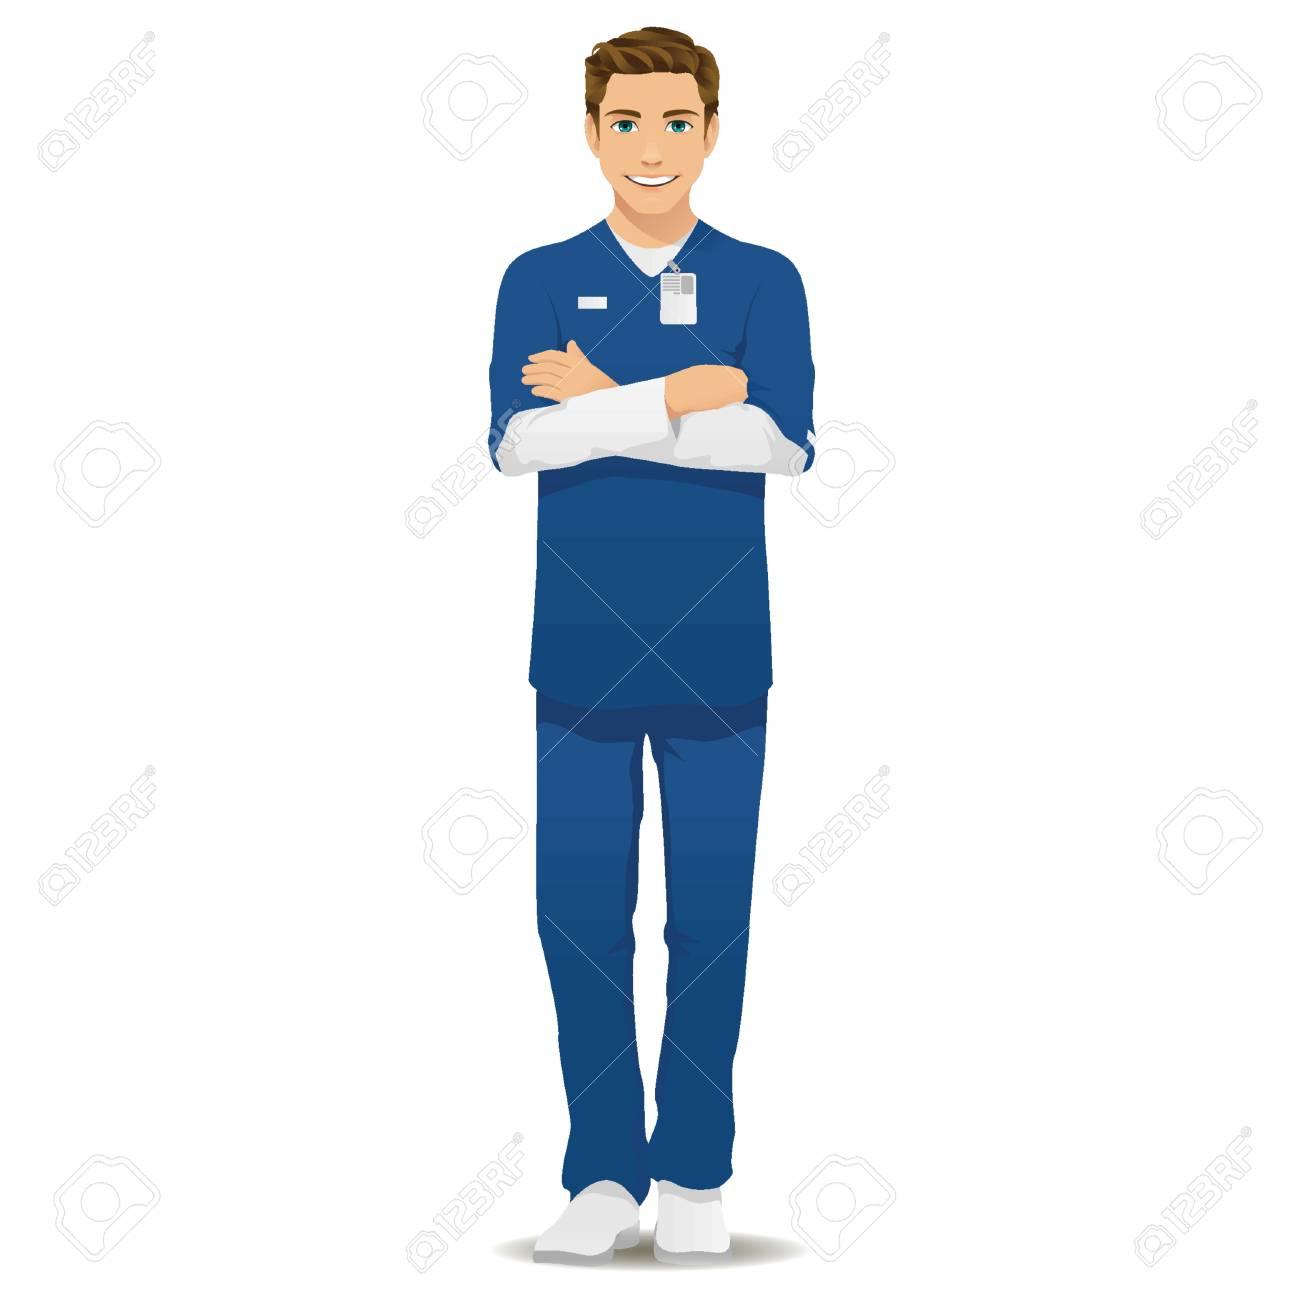 male nurse royalty free cliparts vectors and stock illustration rh 123rf com Male and Female Nurse Clip Art male nurse clipart free